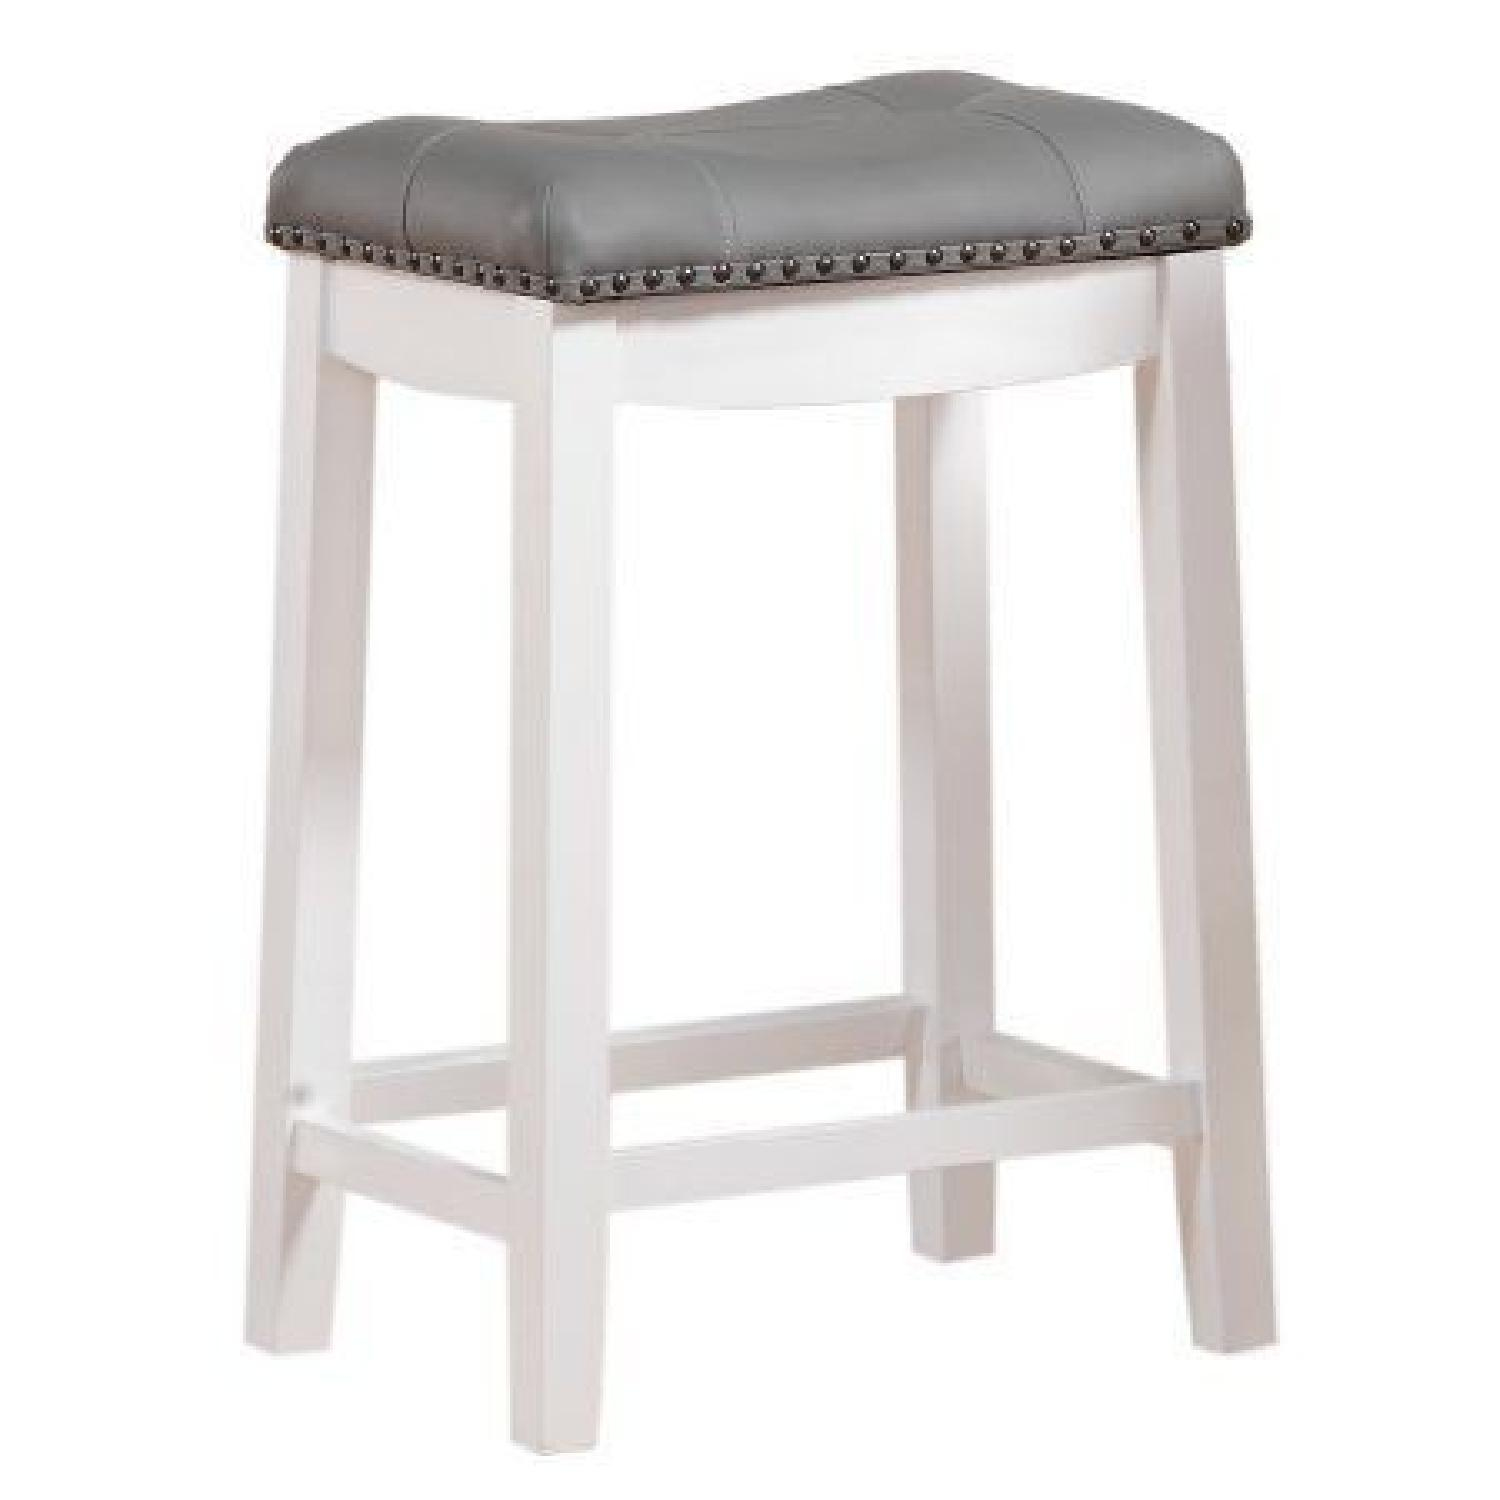 Andover Mills Mikhail Bar Stools - image-0